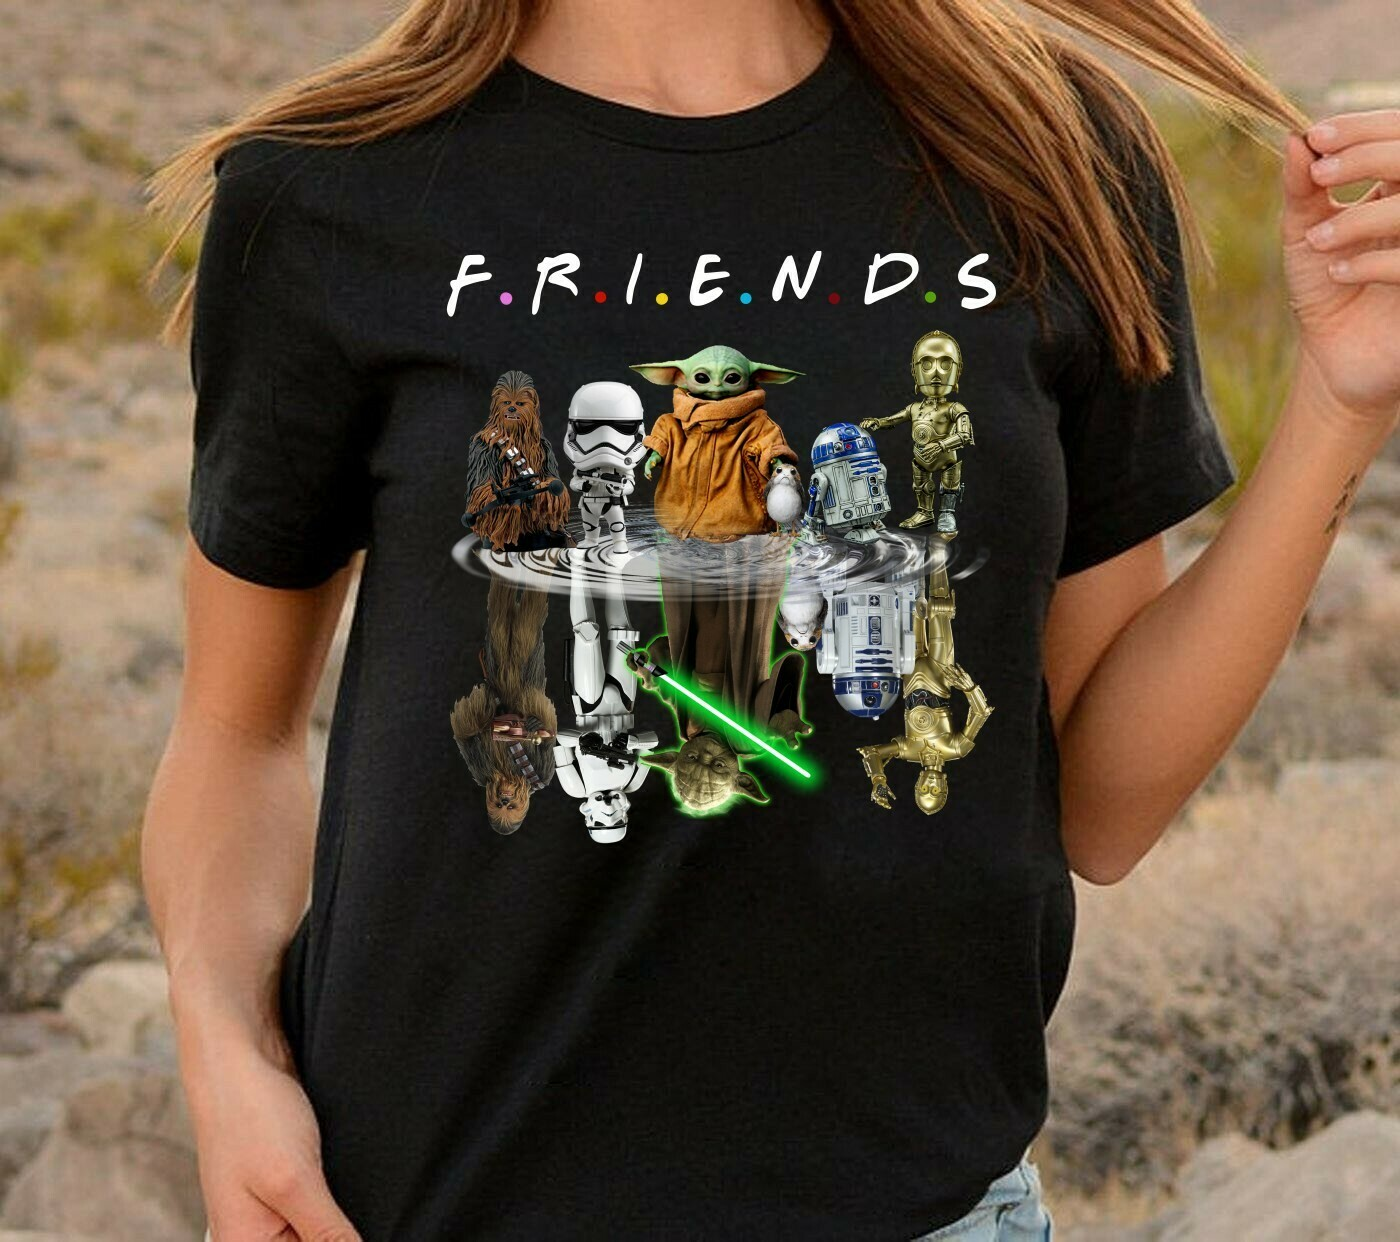 Friends Star Wars Chibi Upside Down Movie Film Family Star Wars Shirts,Jedi Squad Shirts,Family Disney T-shirt,Matching Family Disney Long Sleeve Sweatshirt Hoodie Jolly Family Gifts